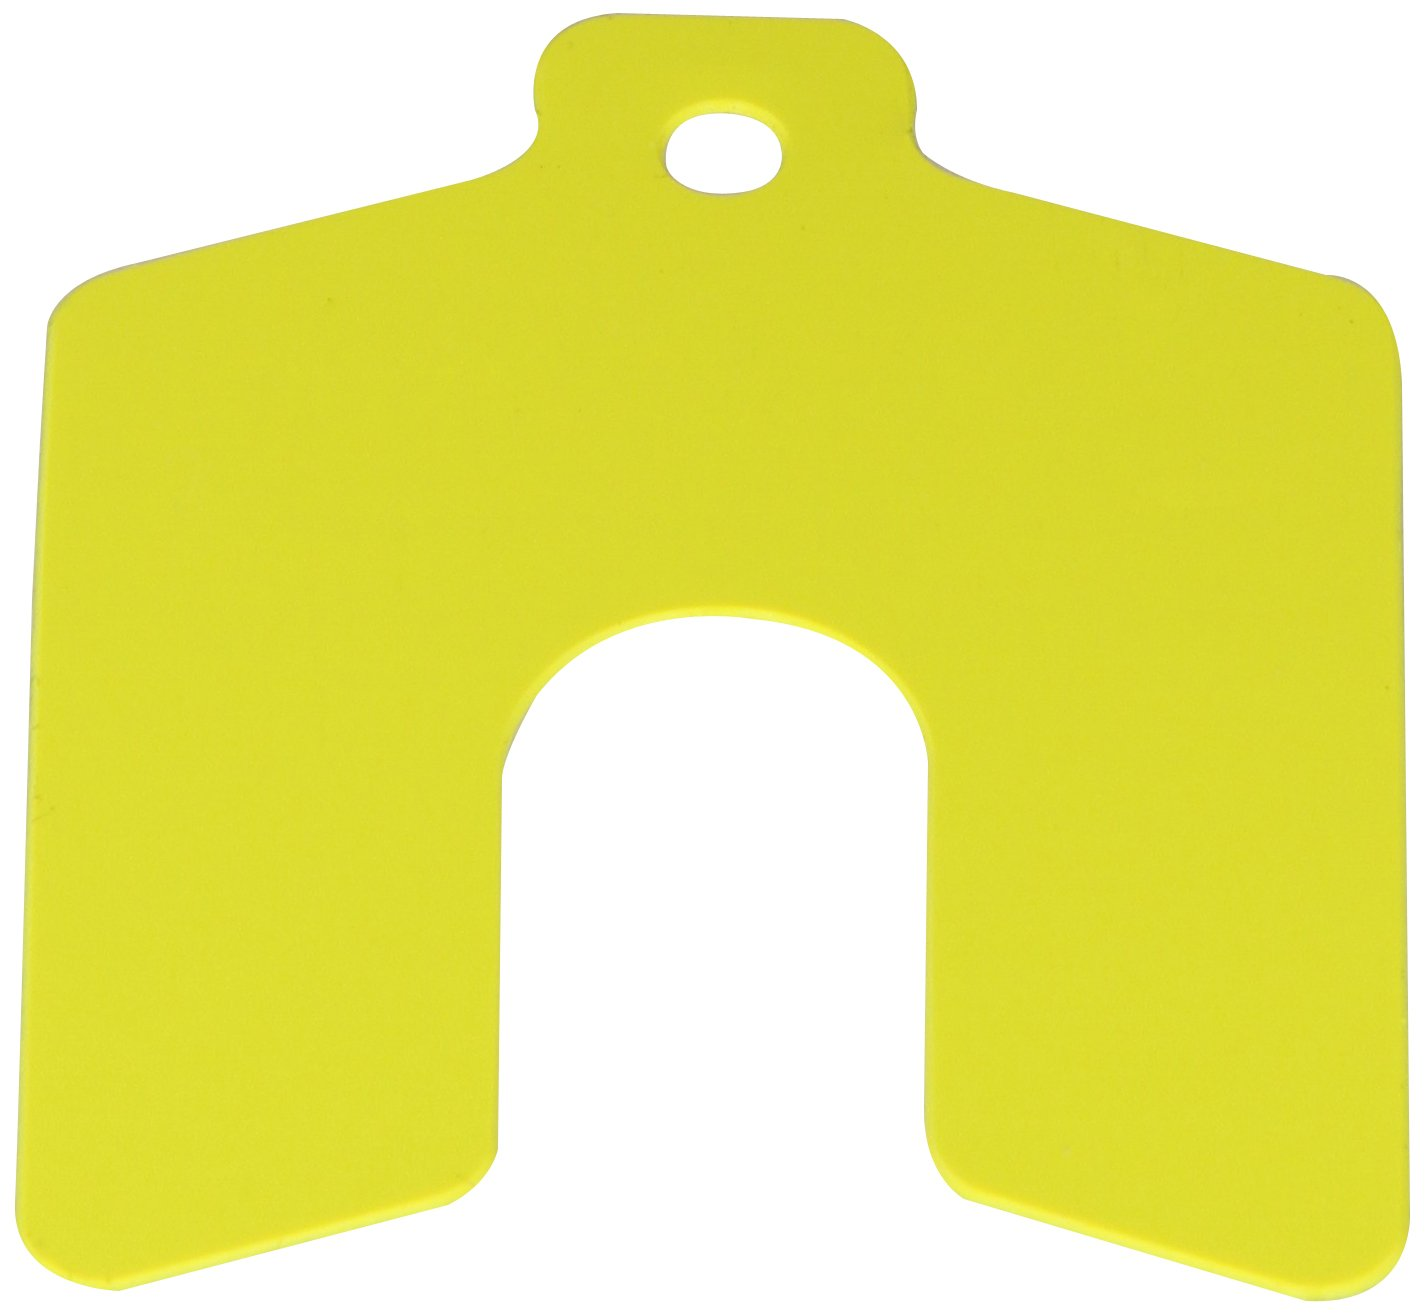 PVC (Polyvinyl Chloride) Slotted Shim, Yellow, 0.020'' Thickness, 2'' Width, 2'' Length, 0.625'' Slot Width (Pack of 20) by Small Parts